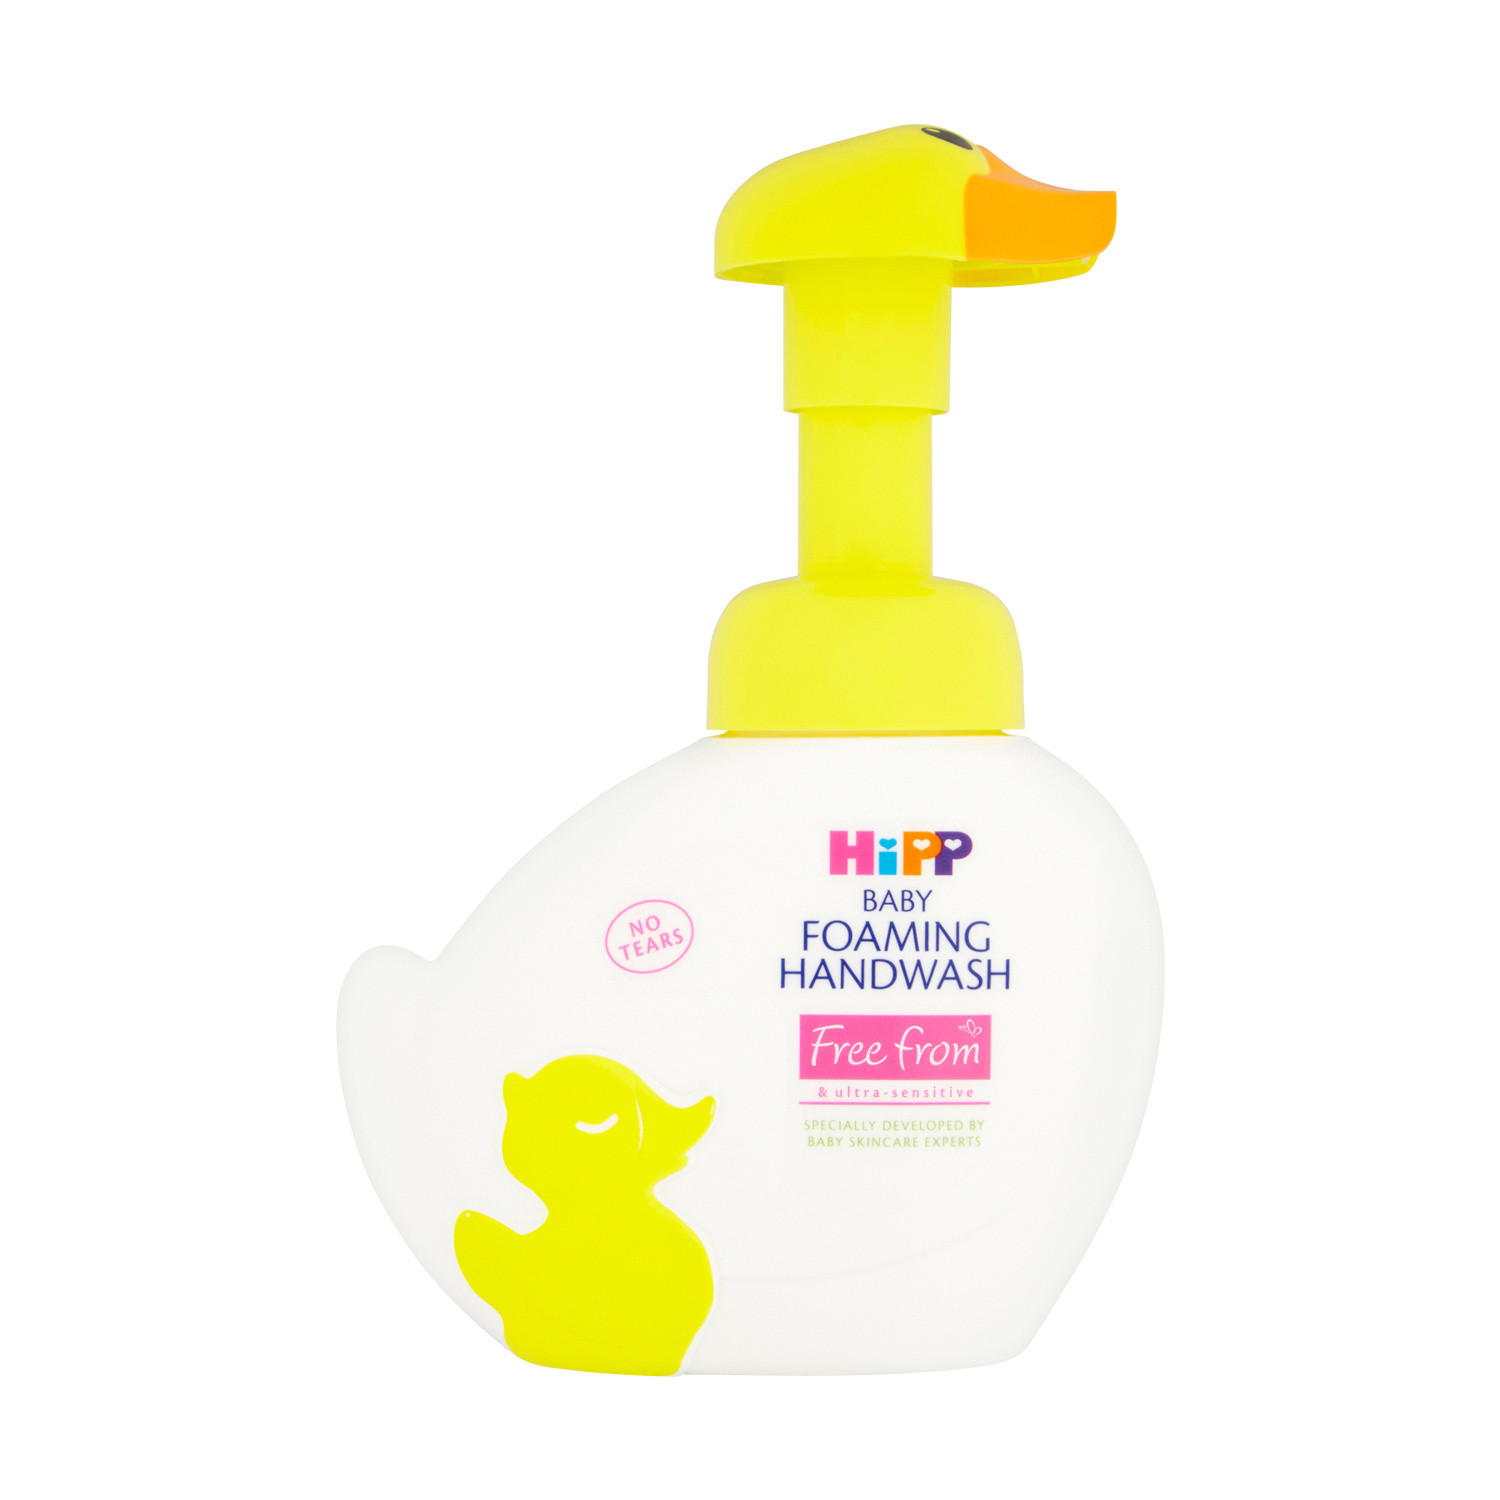 HiPP Foaming Duck Handwash